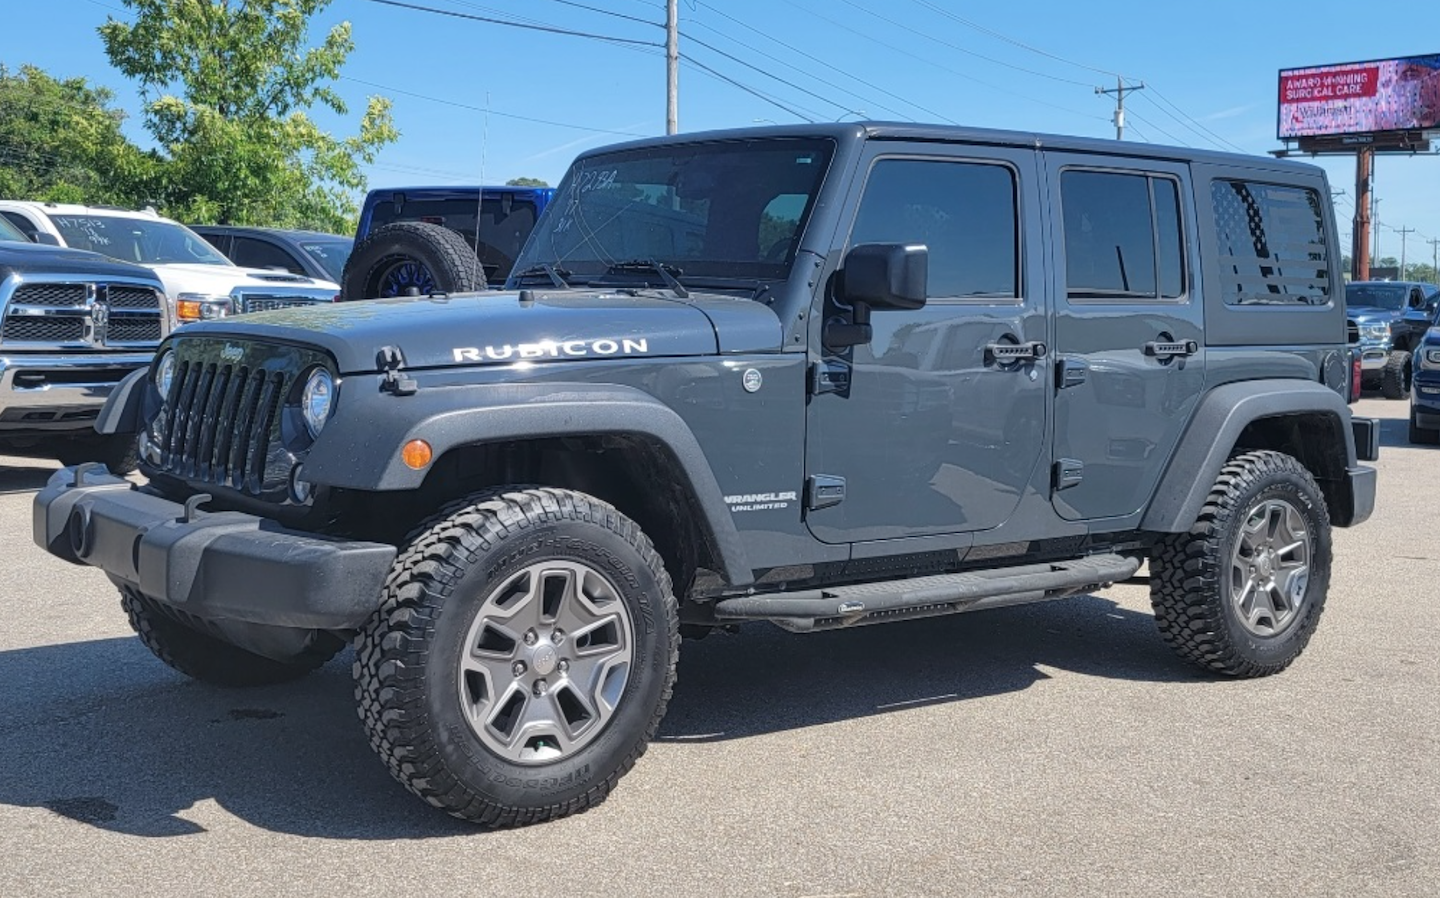 A used Jeep Wrangler Rubicon available at Hyundai of Columbia